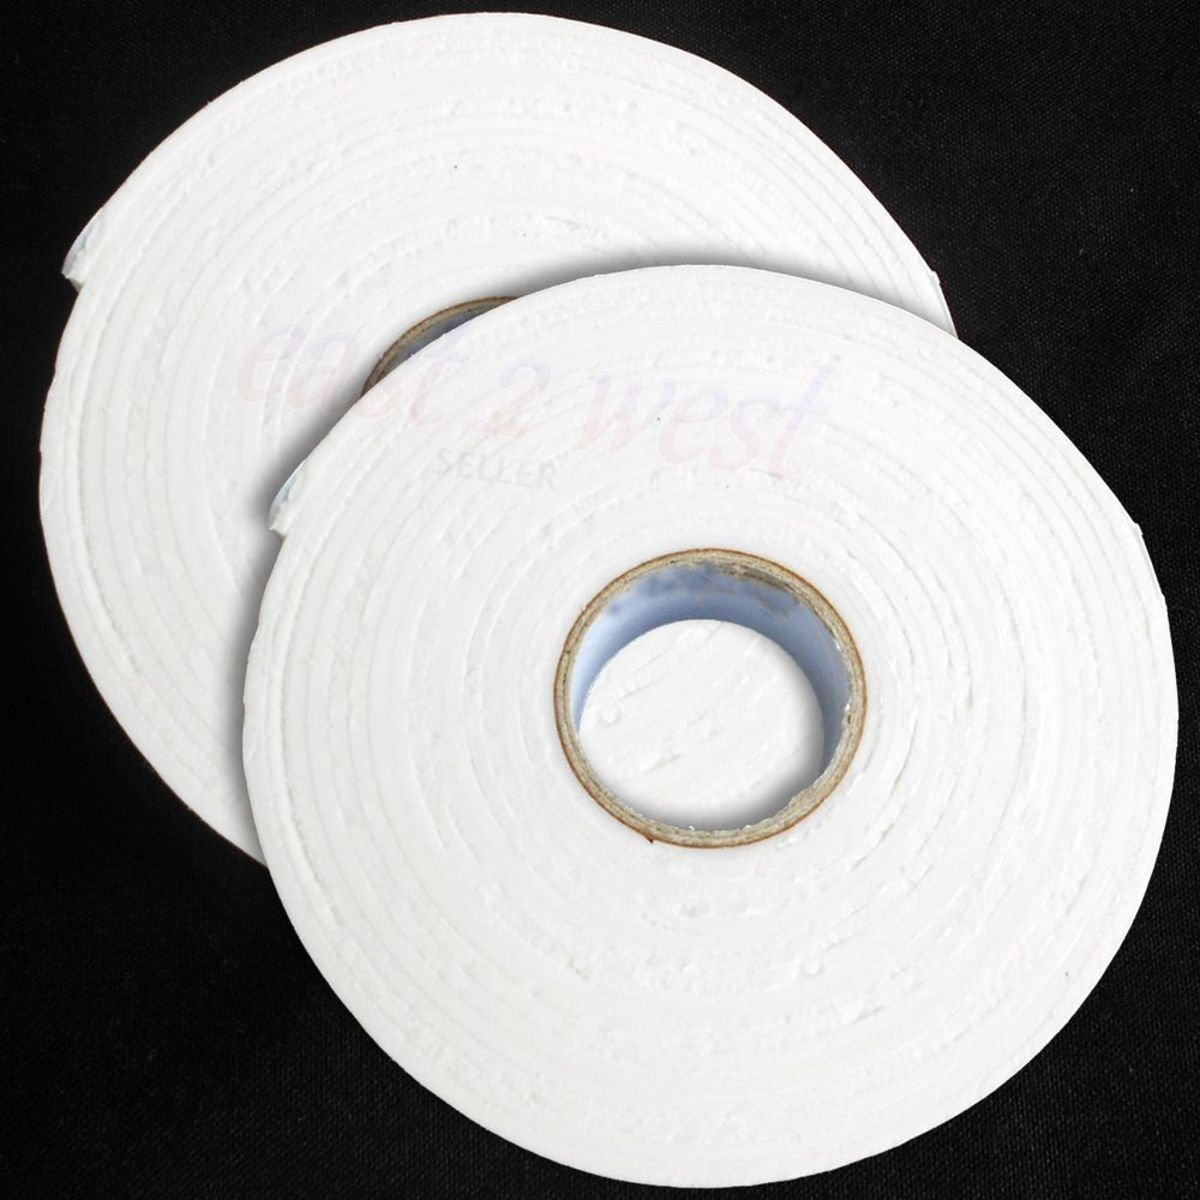 Foam mounting tape comes in a roll and has different widths and lengths